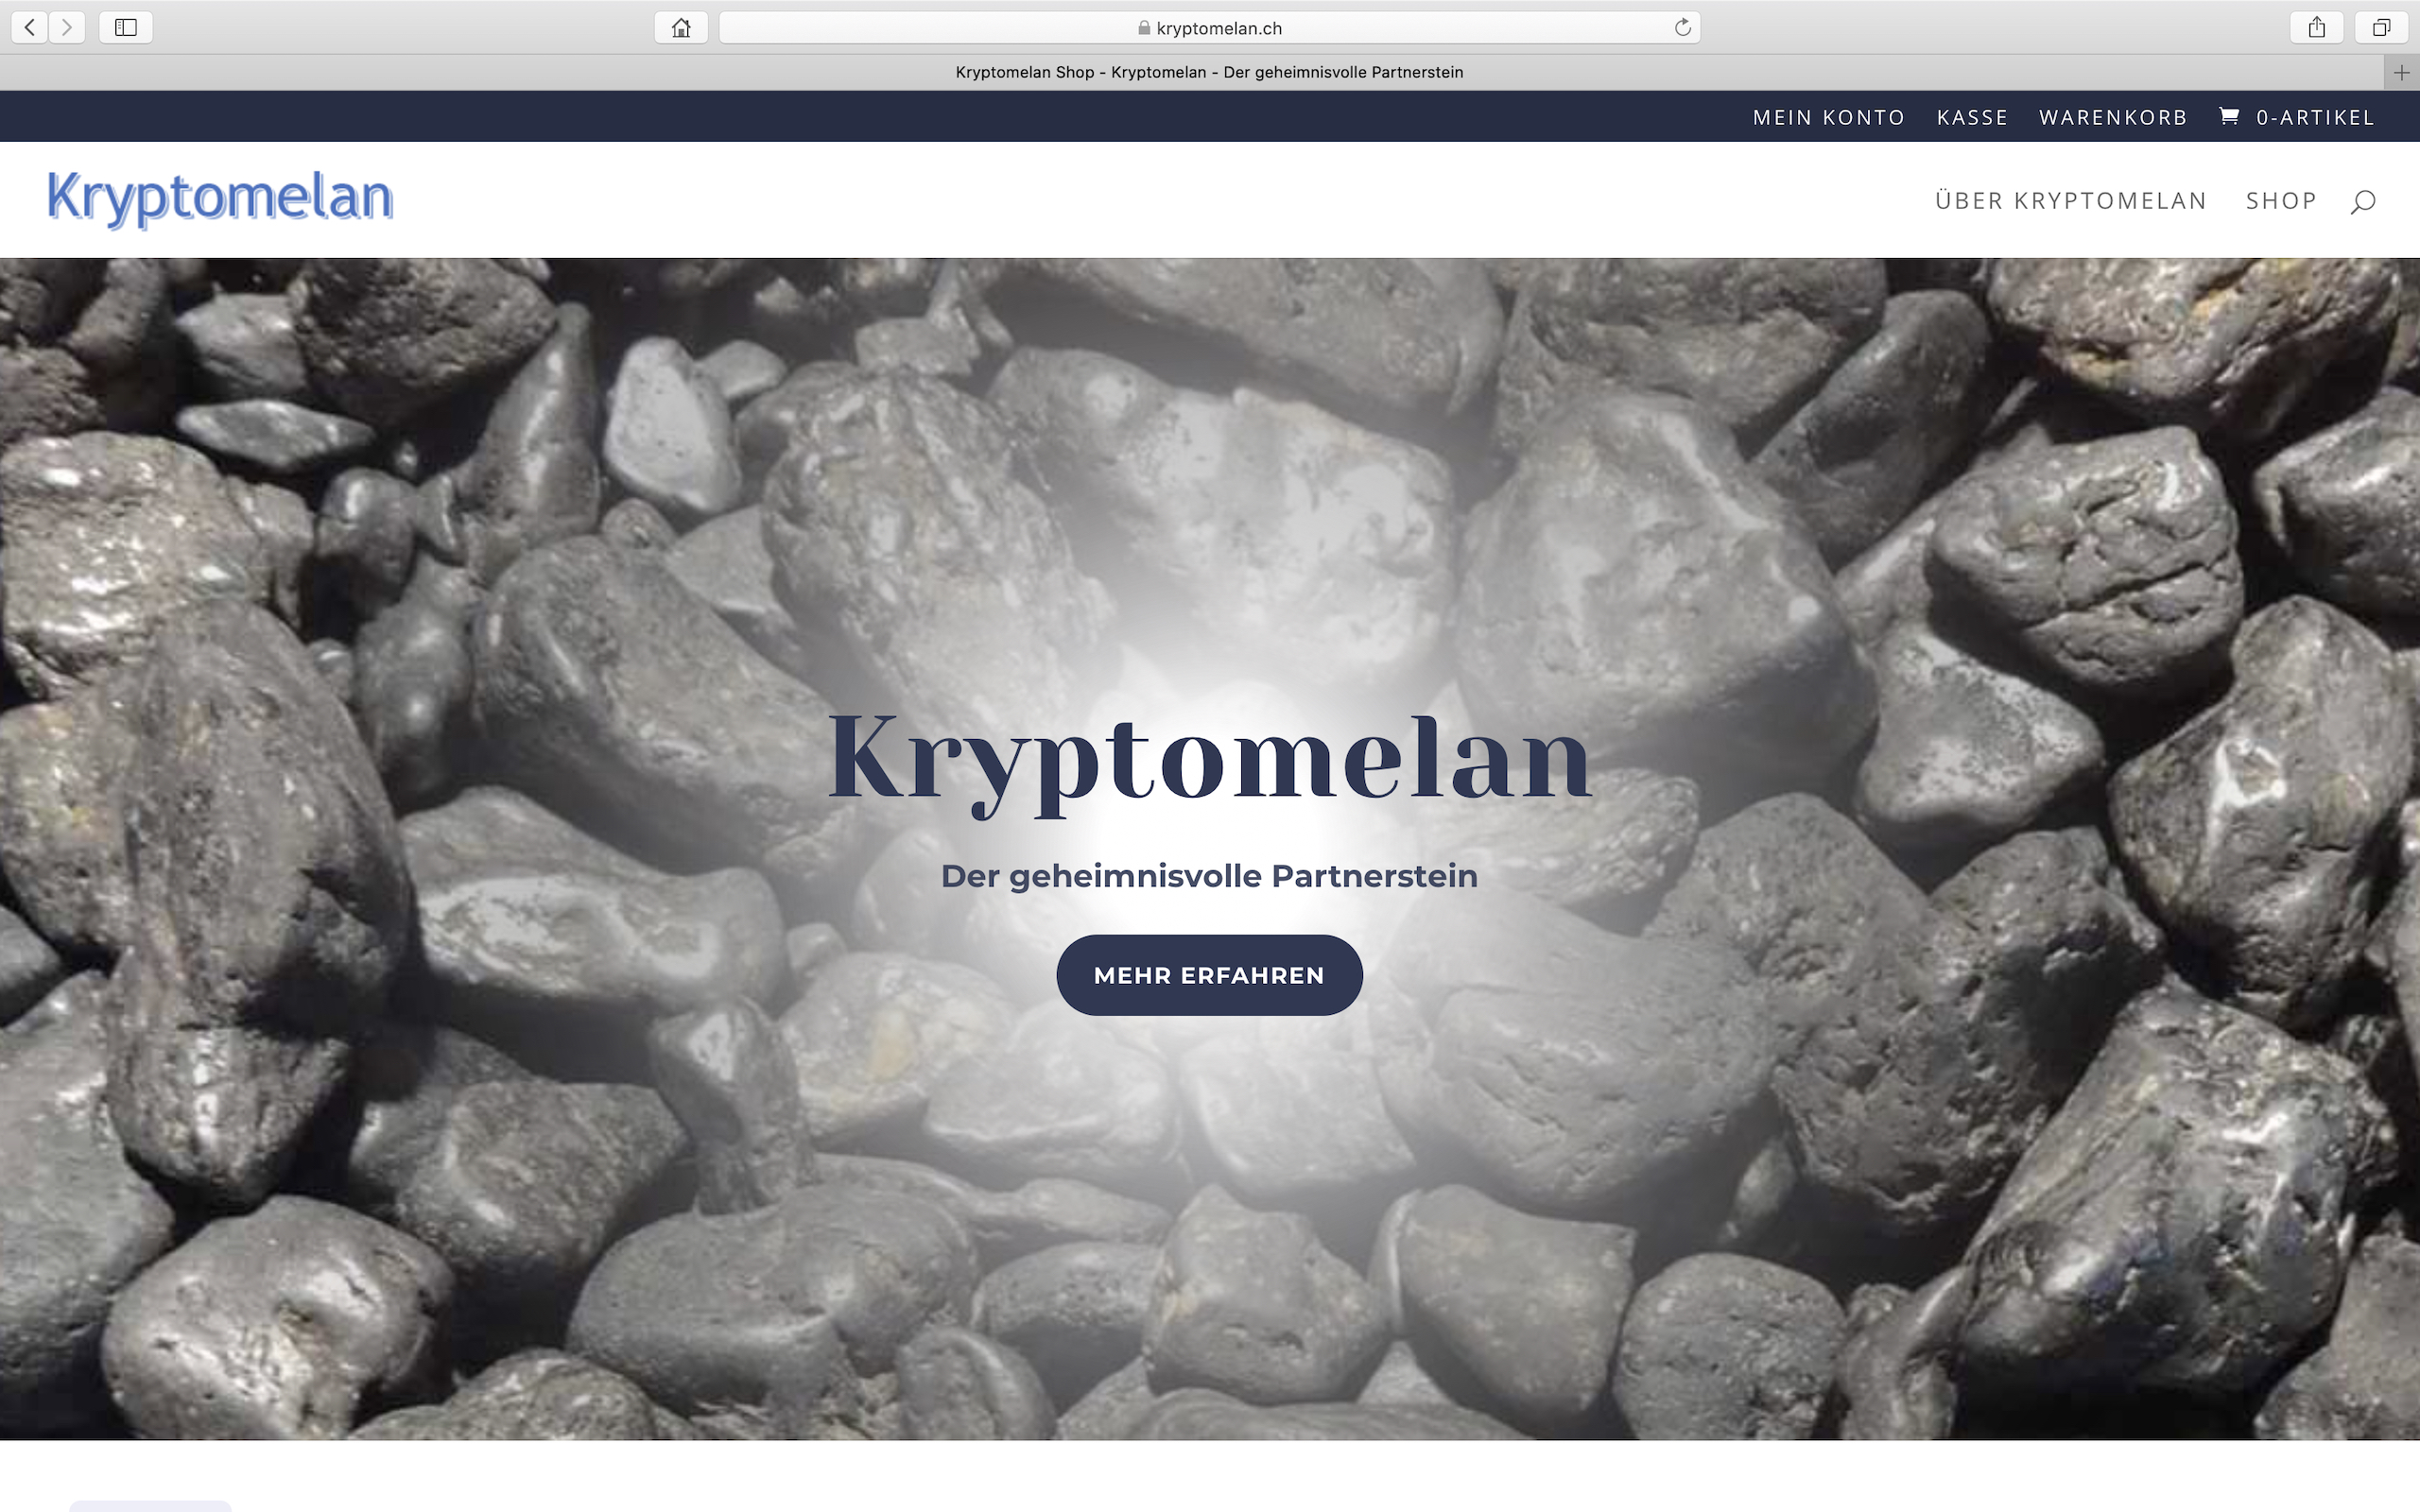 Kryptomelan Shop